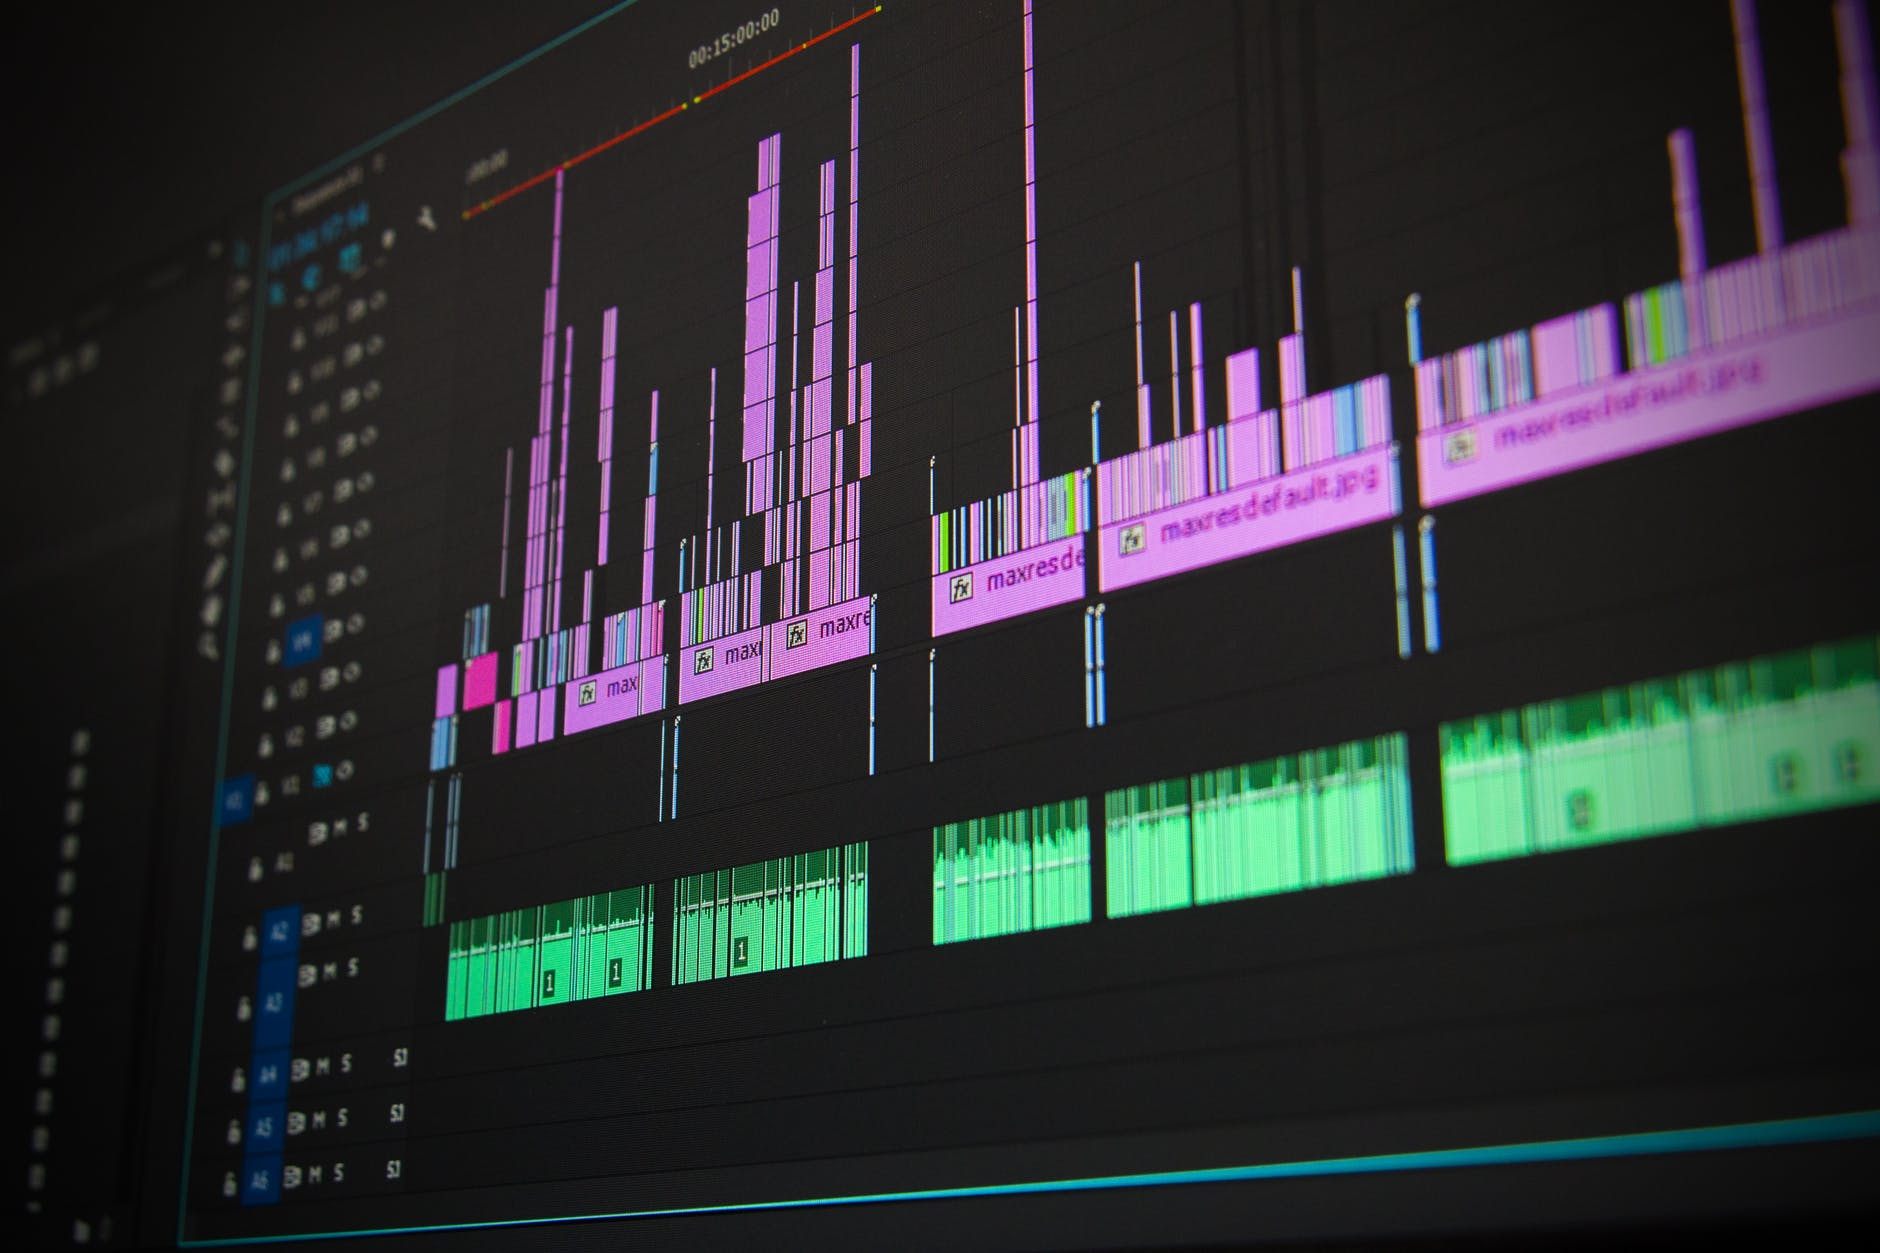 7 Tips and Tricks to Enhance Your Video-Editing Work